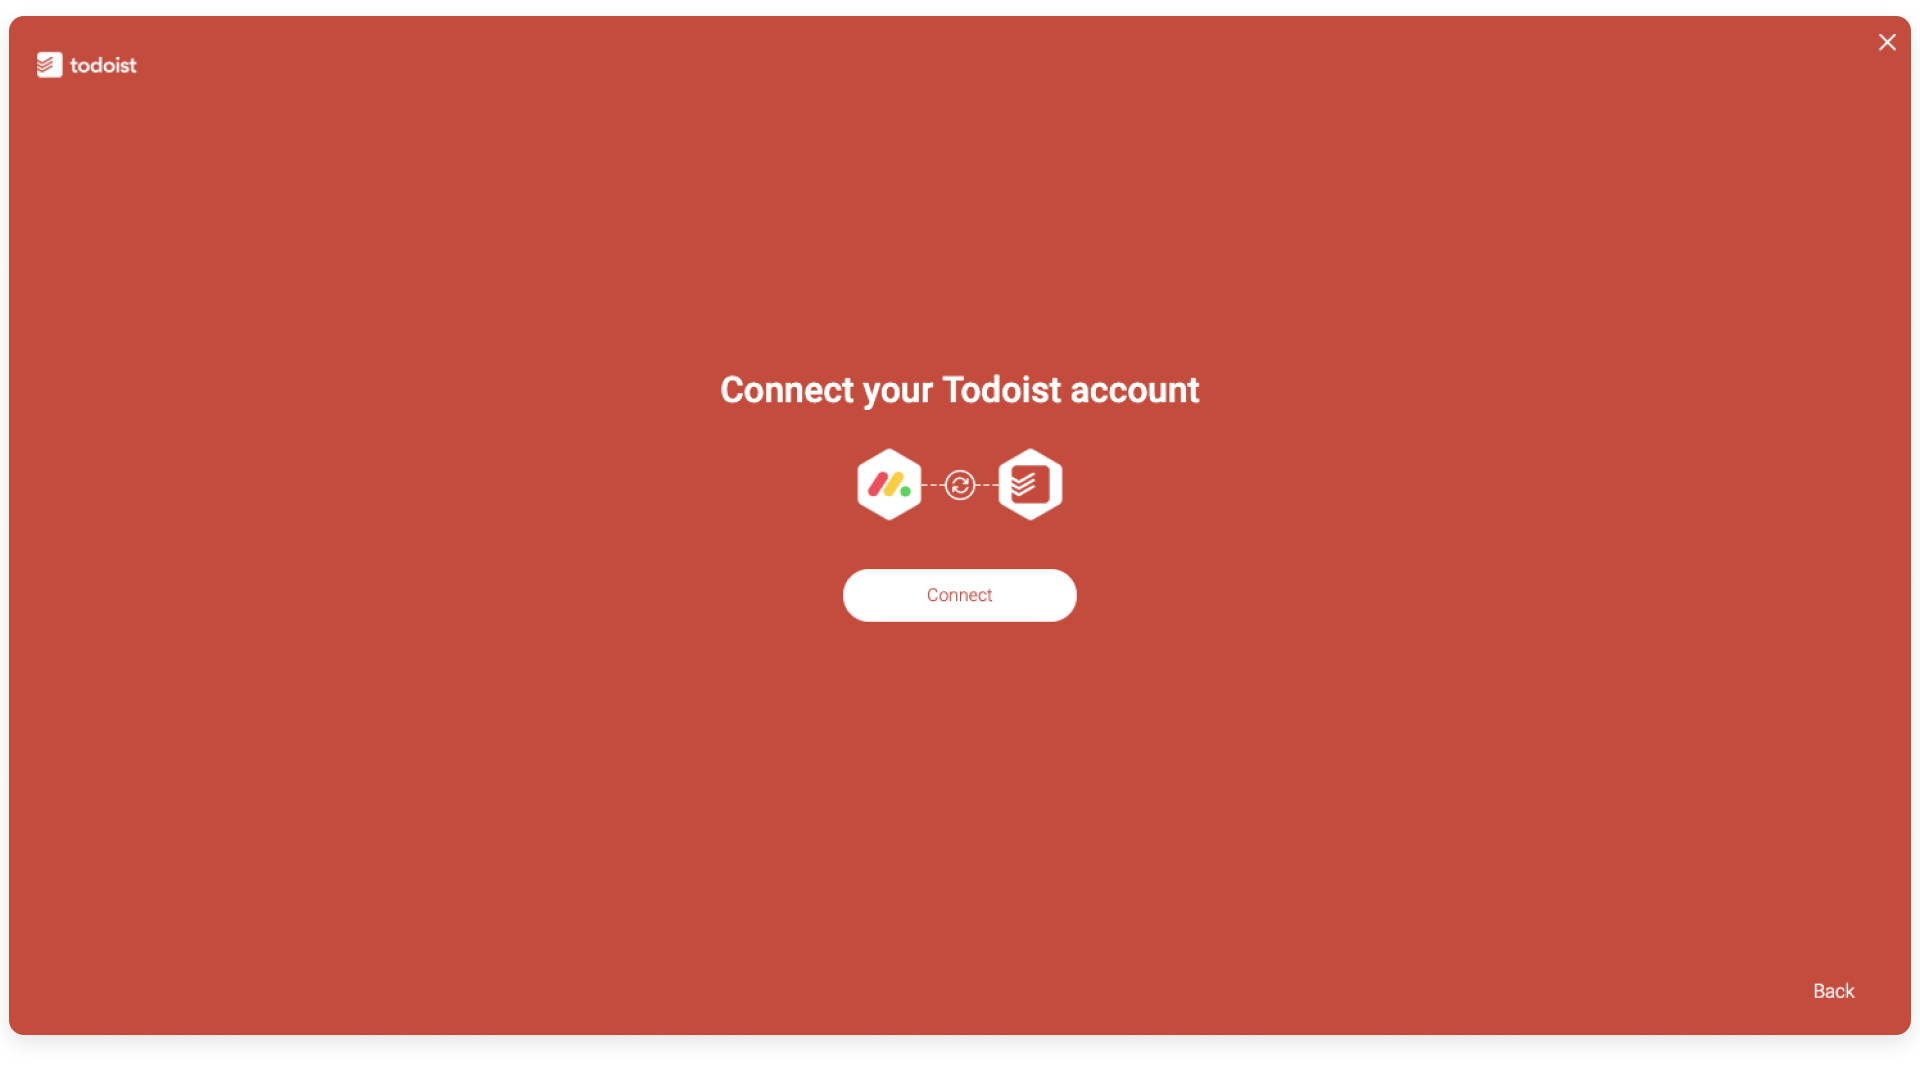 todoist_1.png